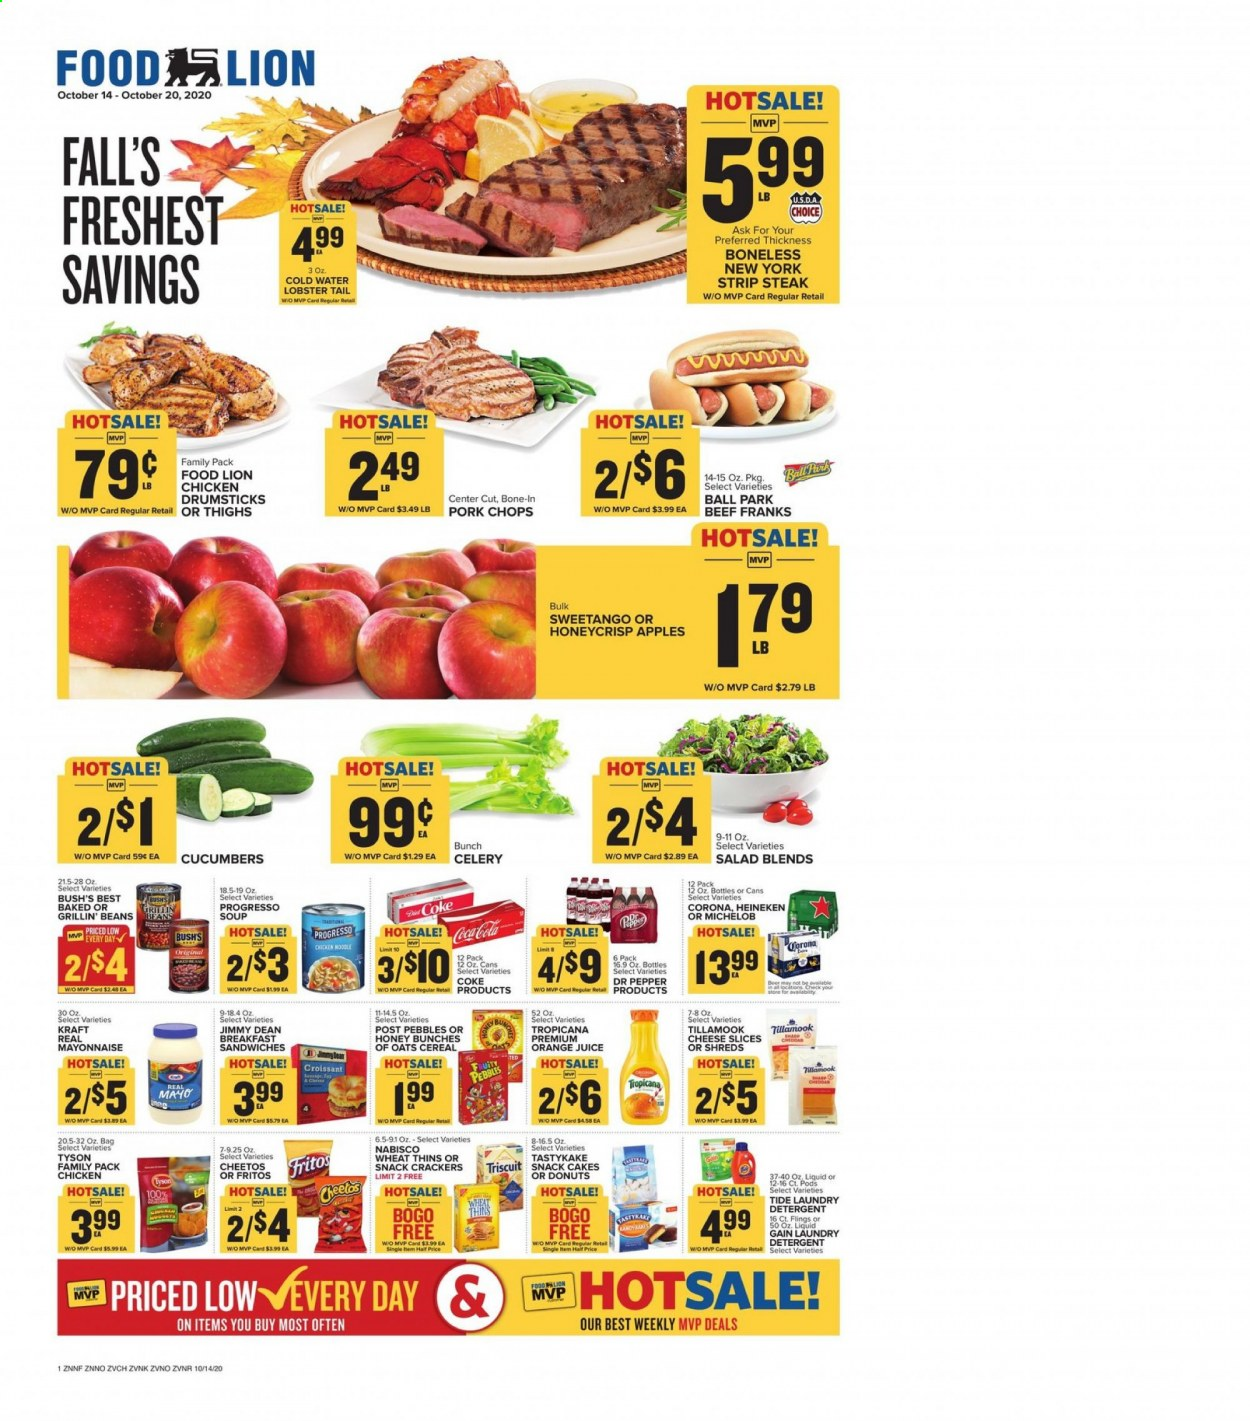 Food Lion Flyer - 10.14.2020 - 10.20.2020 - Sales products - apples, bag, beans, beef meat, beer, celery, cereals, coca-cola, crackers, croissants, cucumbers, detergent, fritos, gain, lobster, mayonnaise, tide, honey, pork chops, pork meat, cheese slices, cheetos, chicken, chicken drumsticks, noodle, oats, orange juice, orange, steak, cheese, juice, cake, soup, pepper, snack, donuts, cereal, salad, ball, corona, michelob, heineken, liquid, bunches, laundry detergent, lobster tail, family pack, apple, donut. Page 1.